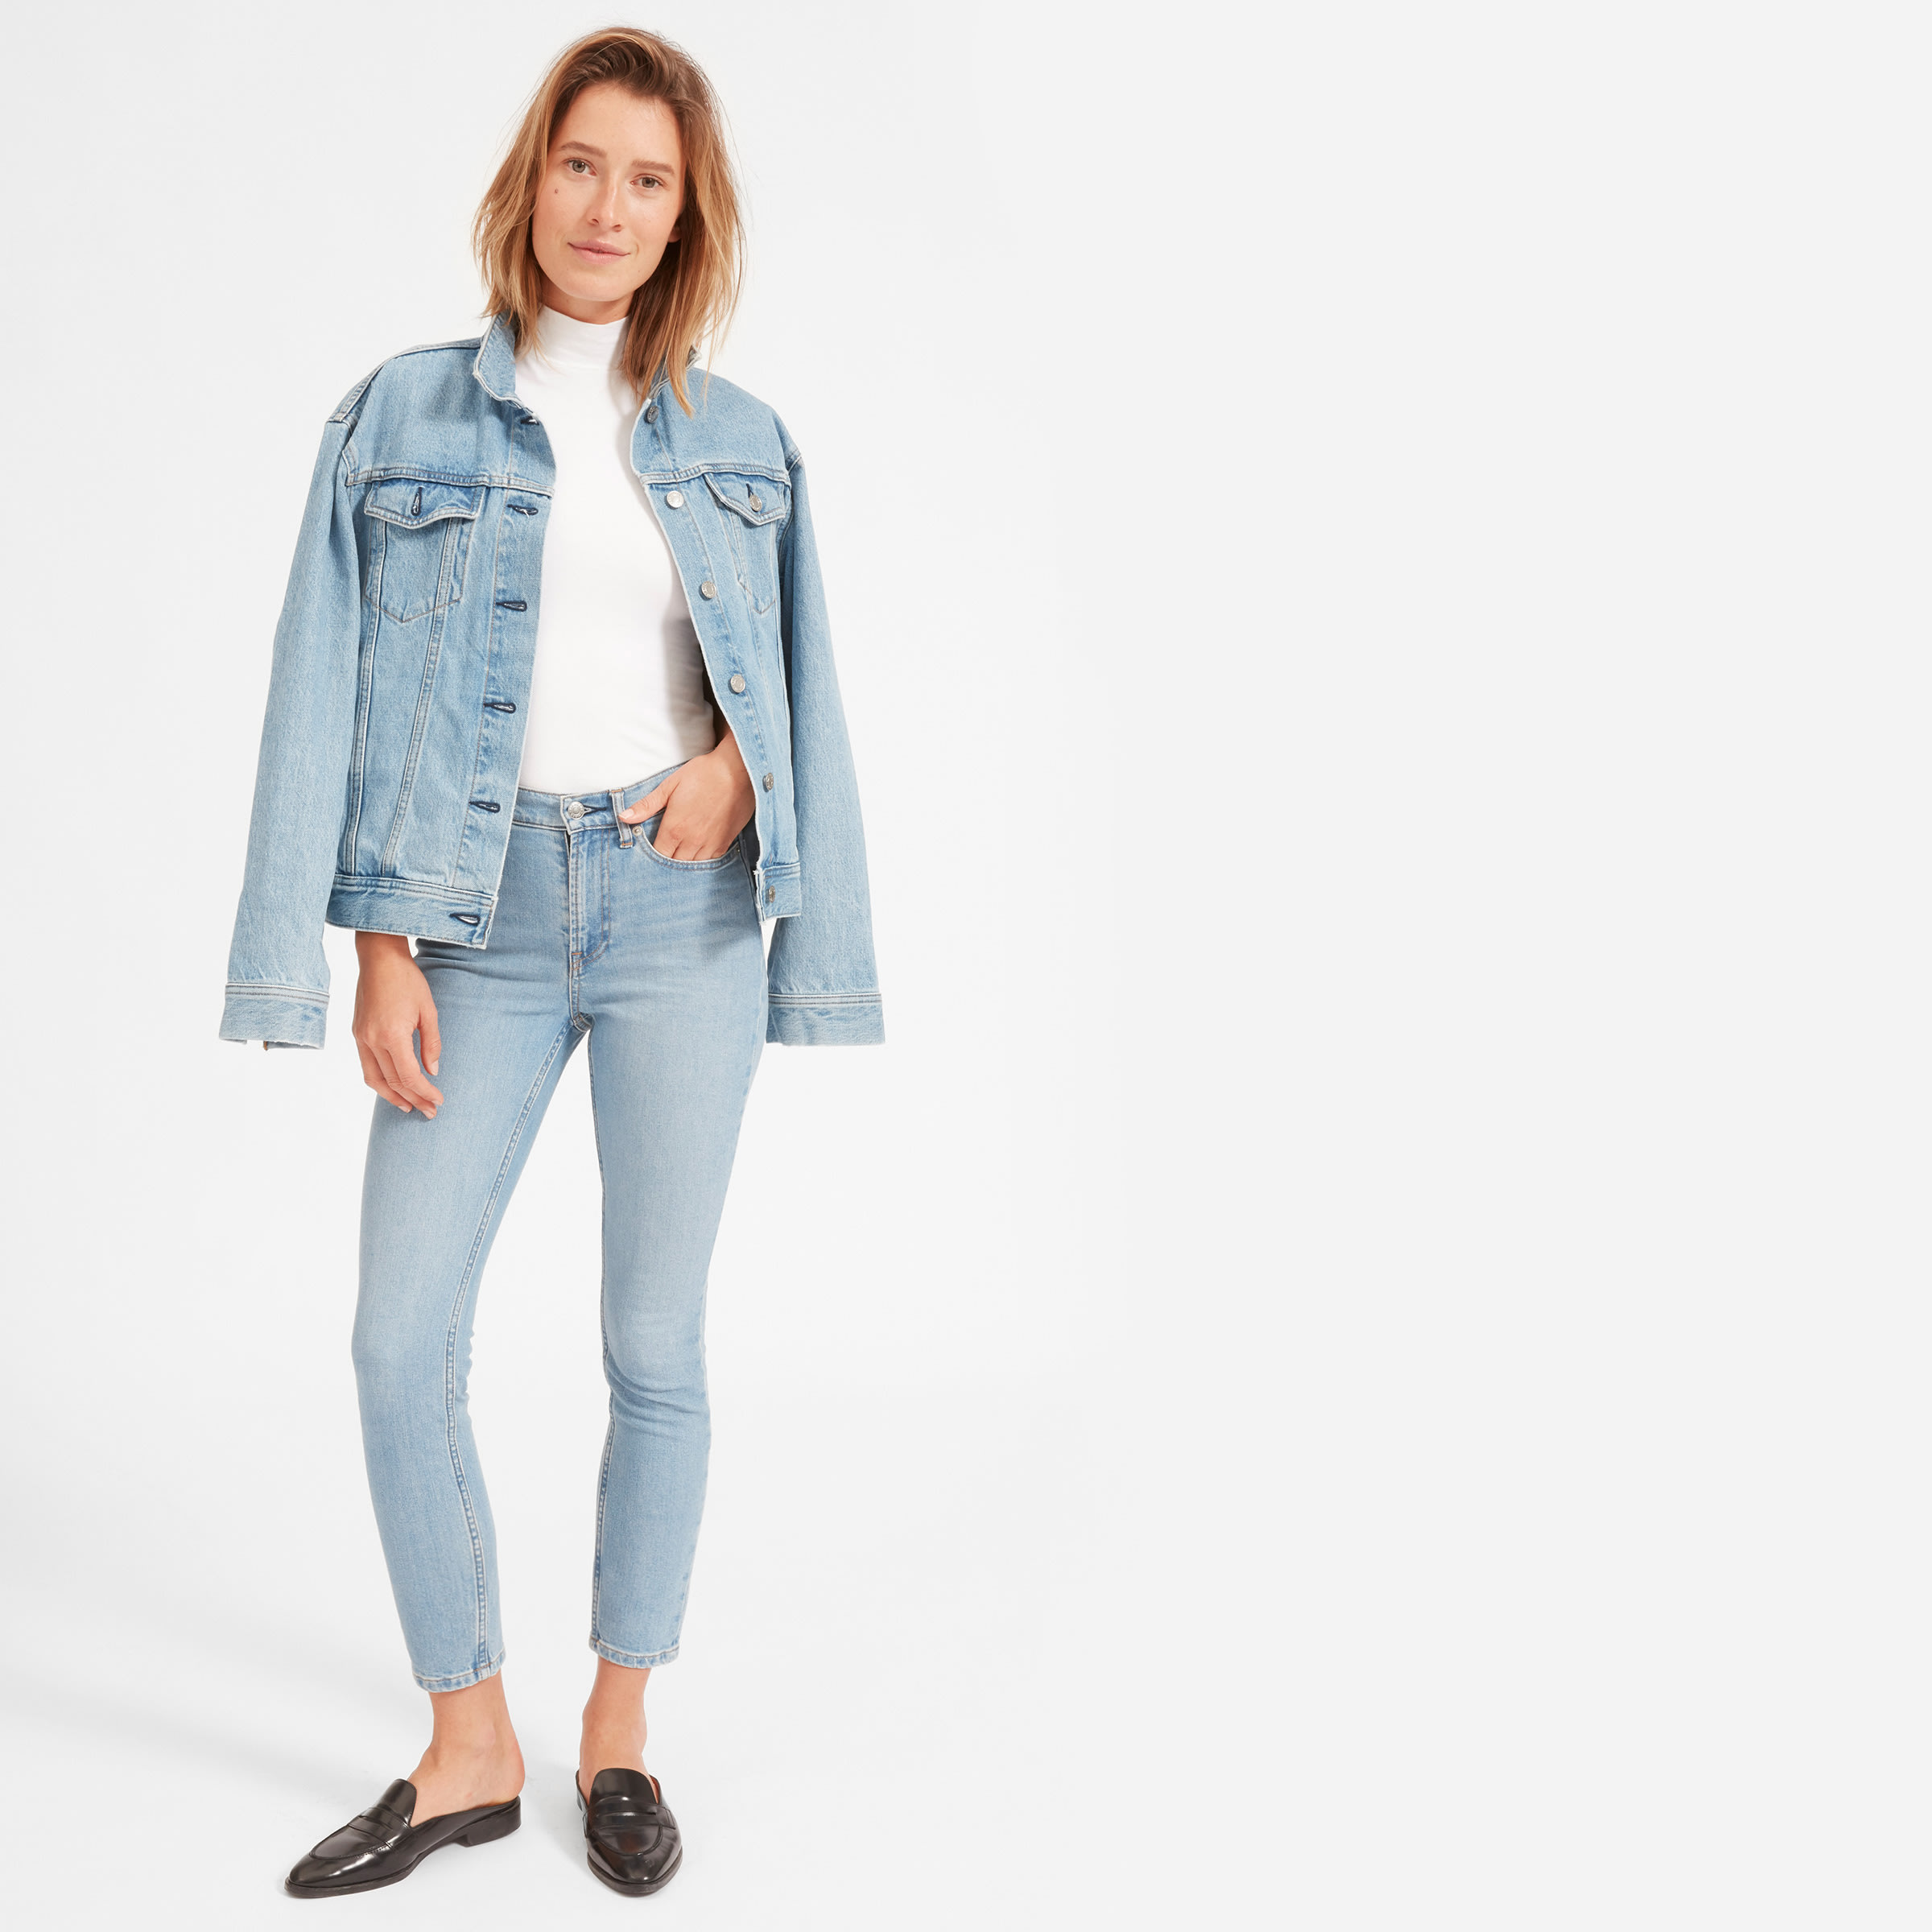 3a38acd806624 Women's Choose What You Pay | Everlane